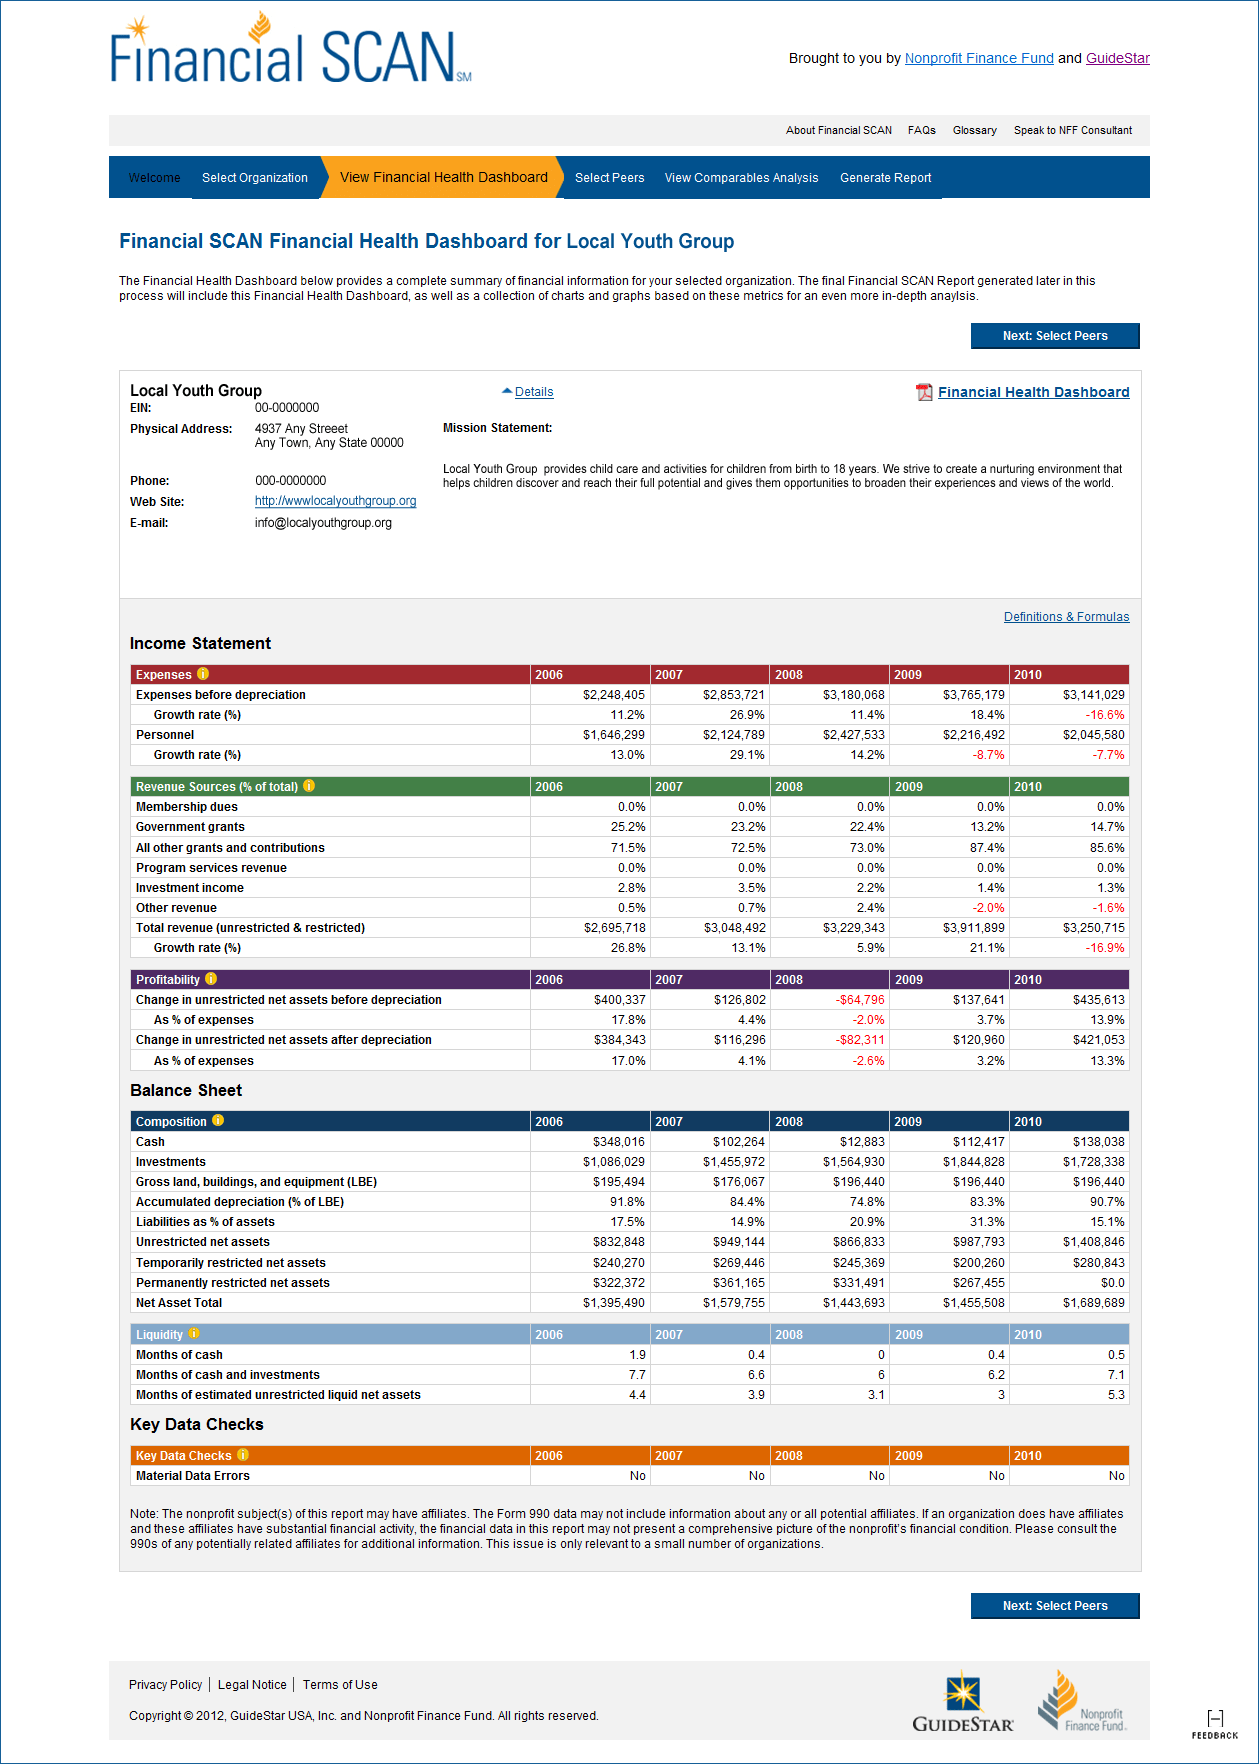 Non Profit Financial Statements Template and Financial Scan for Nonprofits